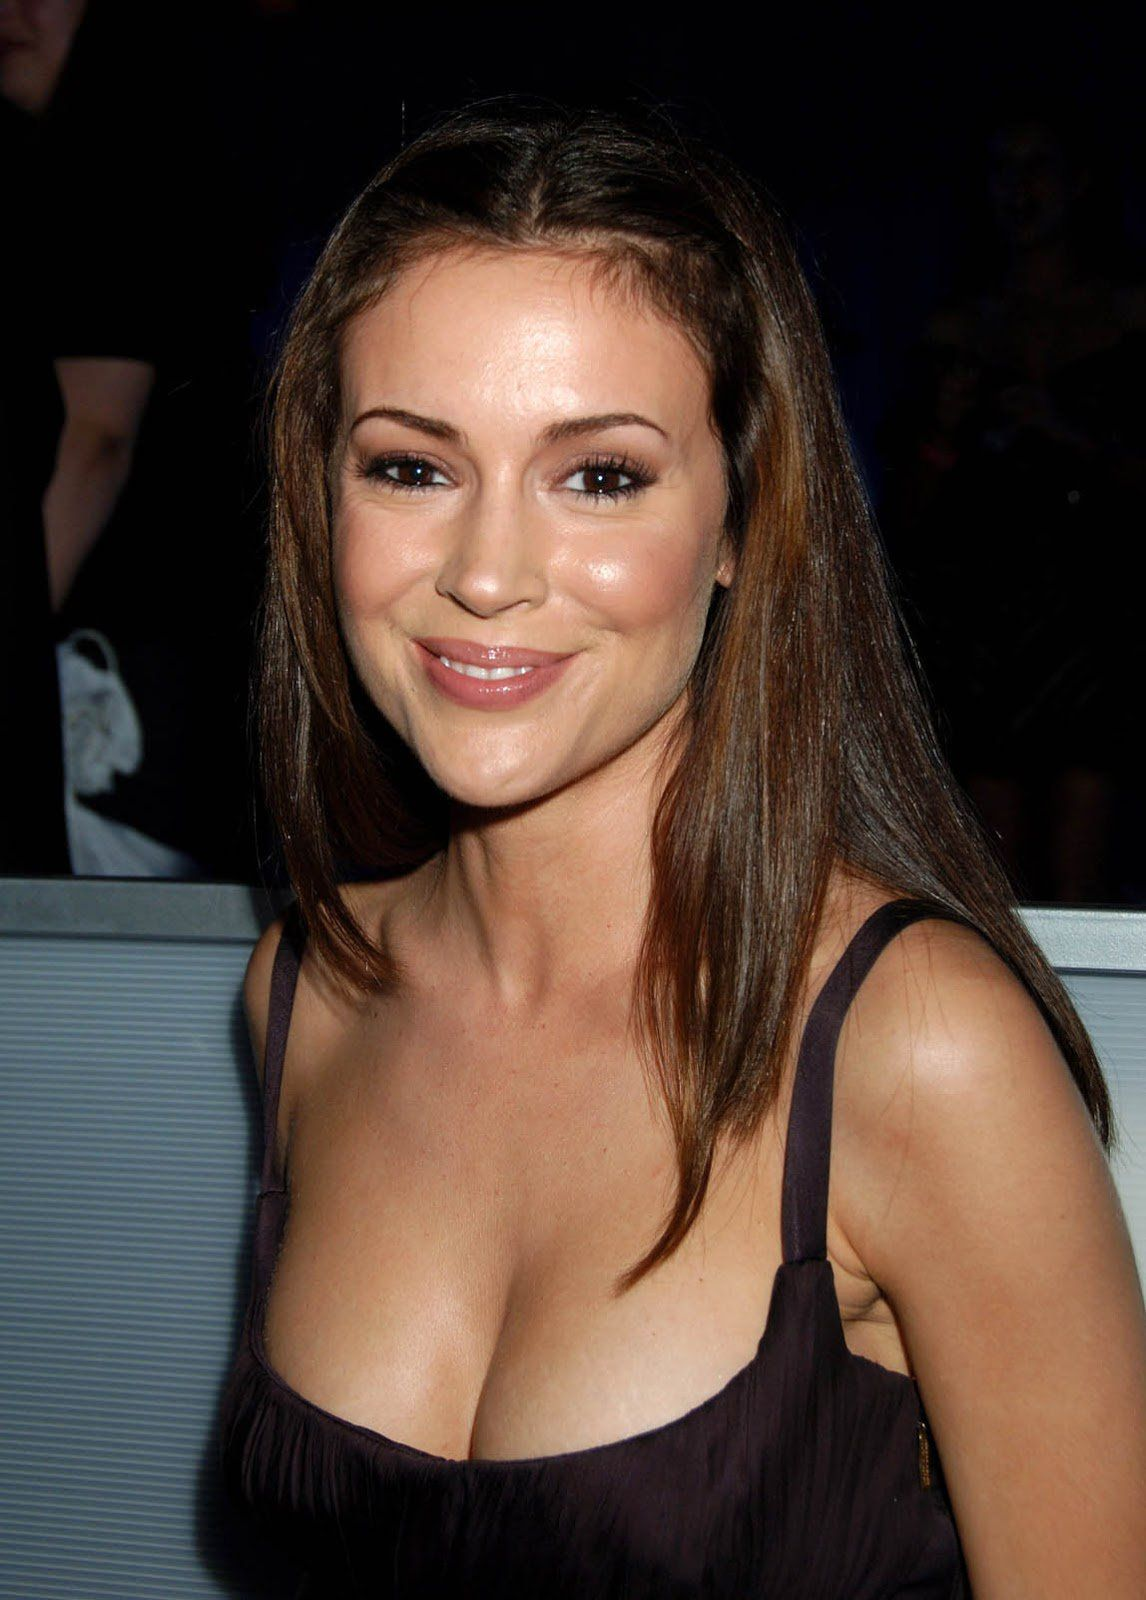 Alyssa Milano Tits pin on top cleavage